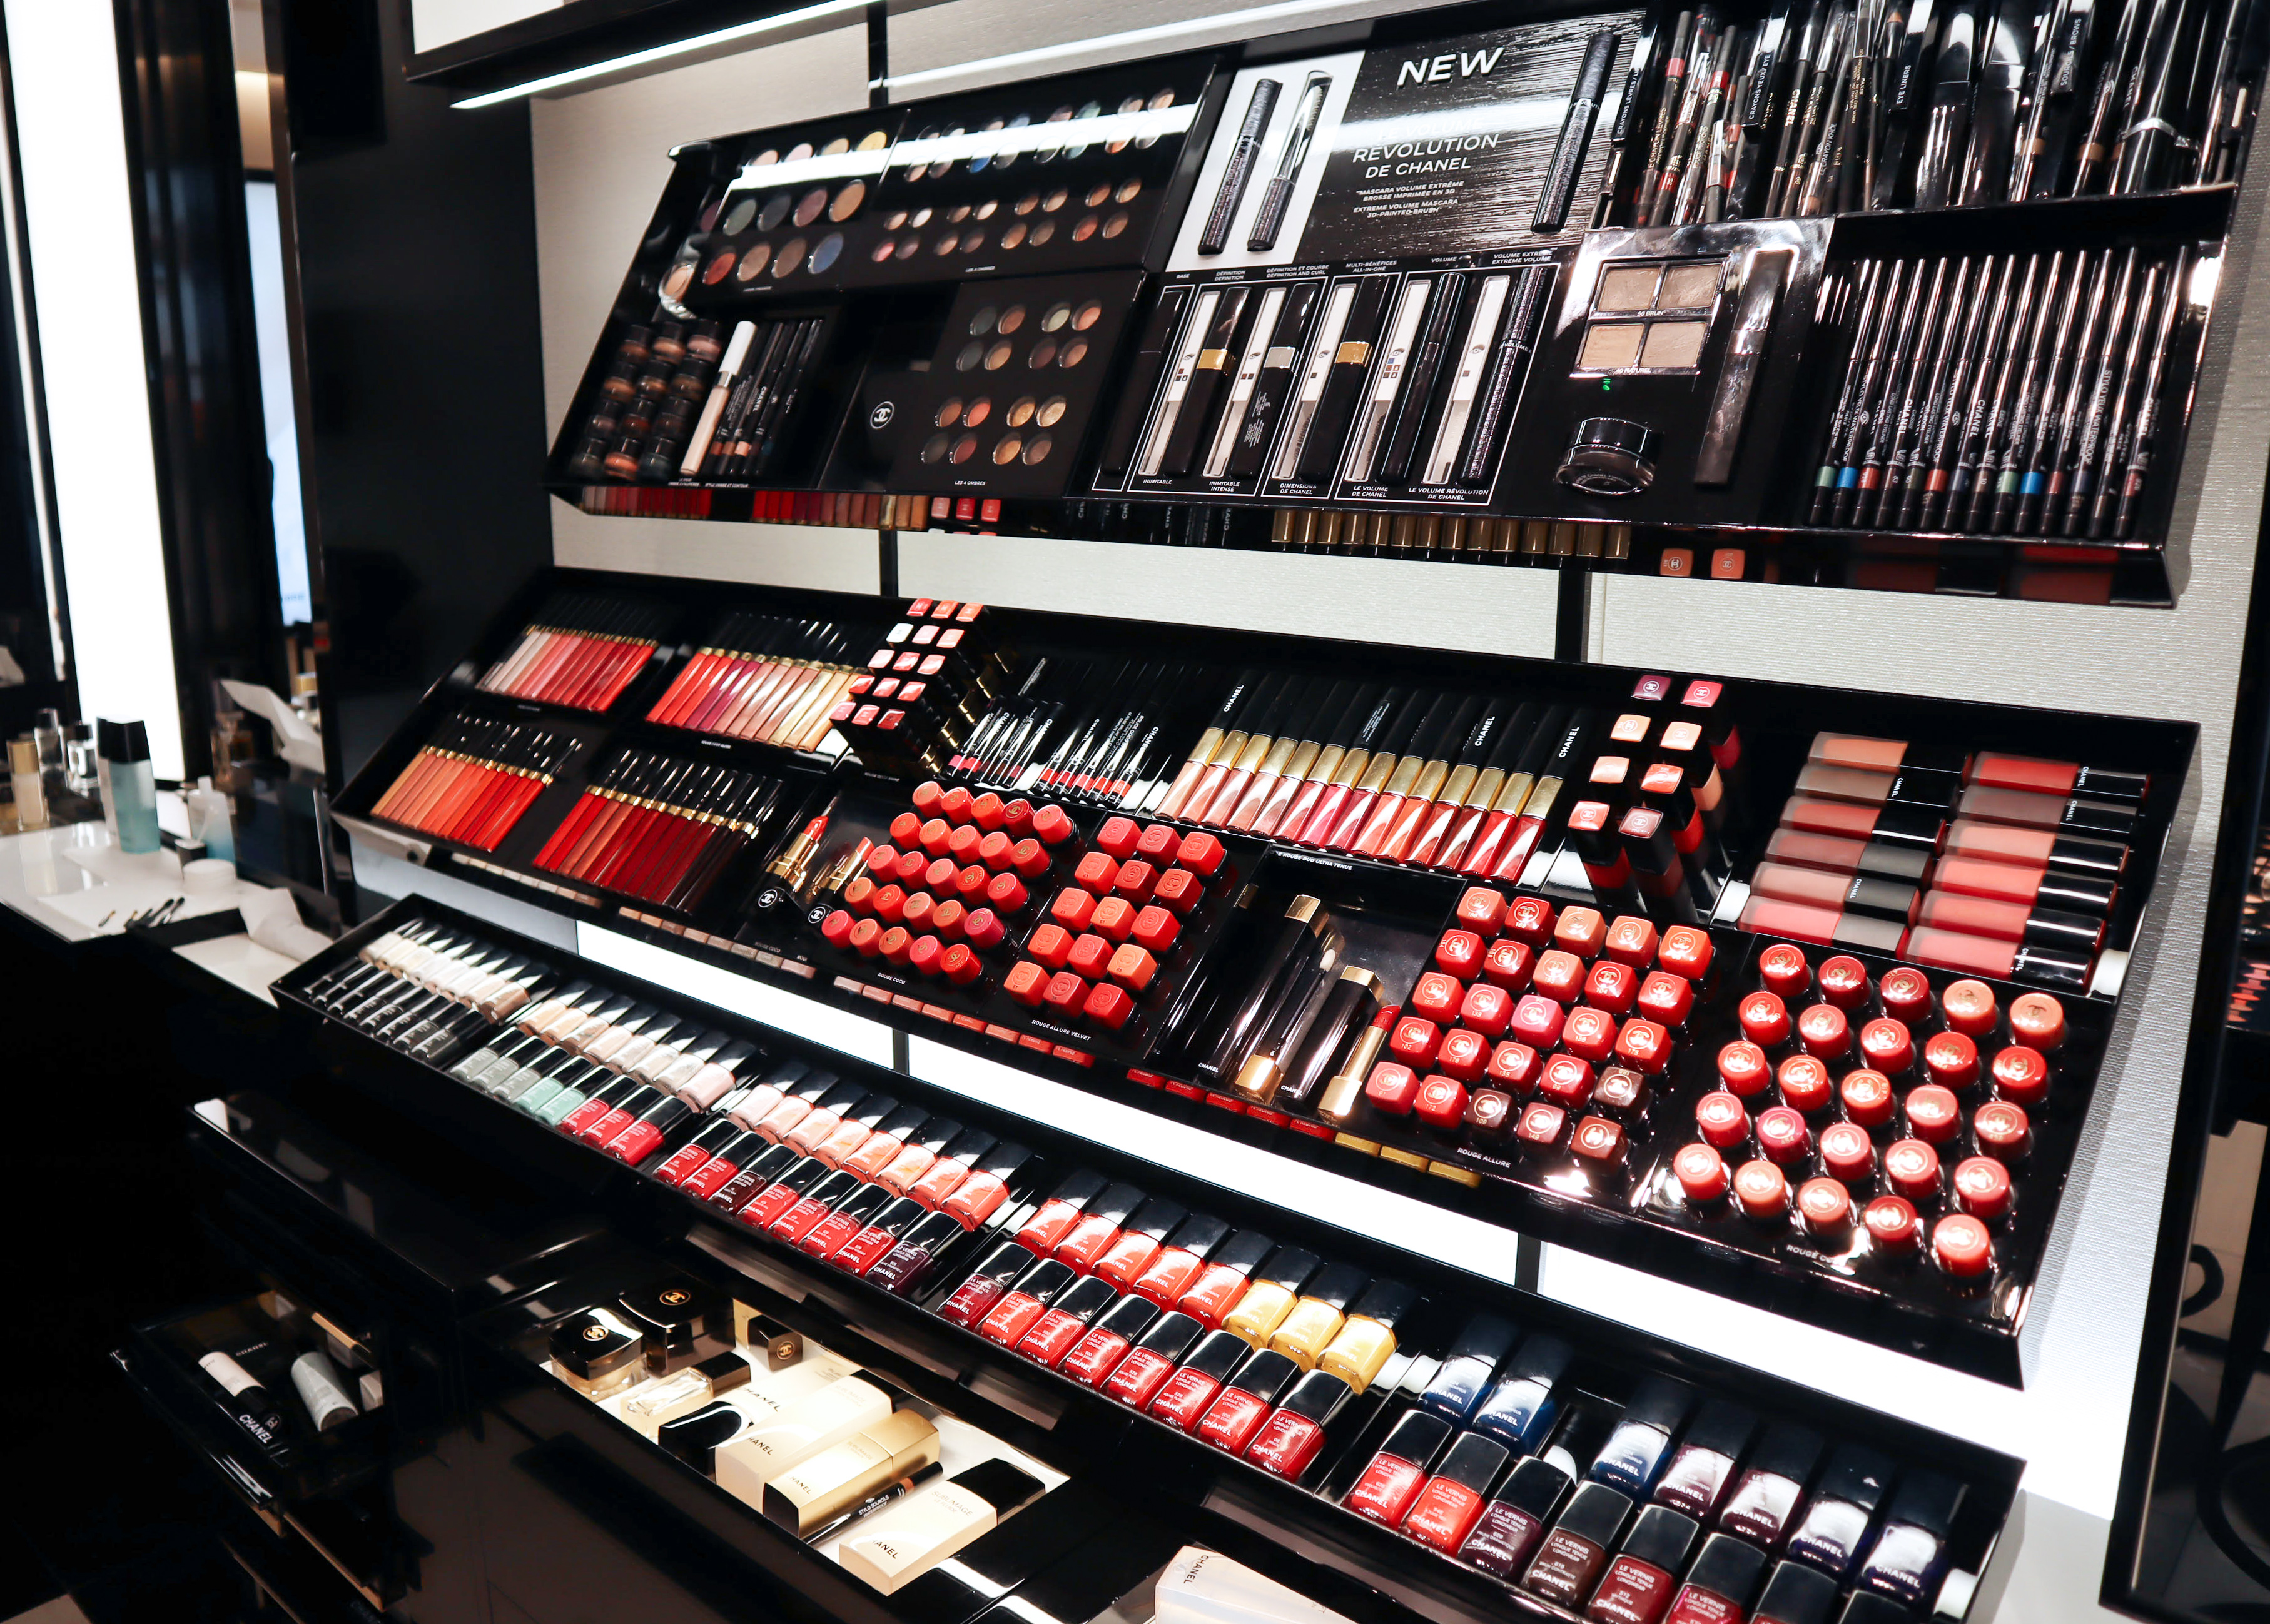 Chanel Makeup Beauty - The LDN Diaries